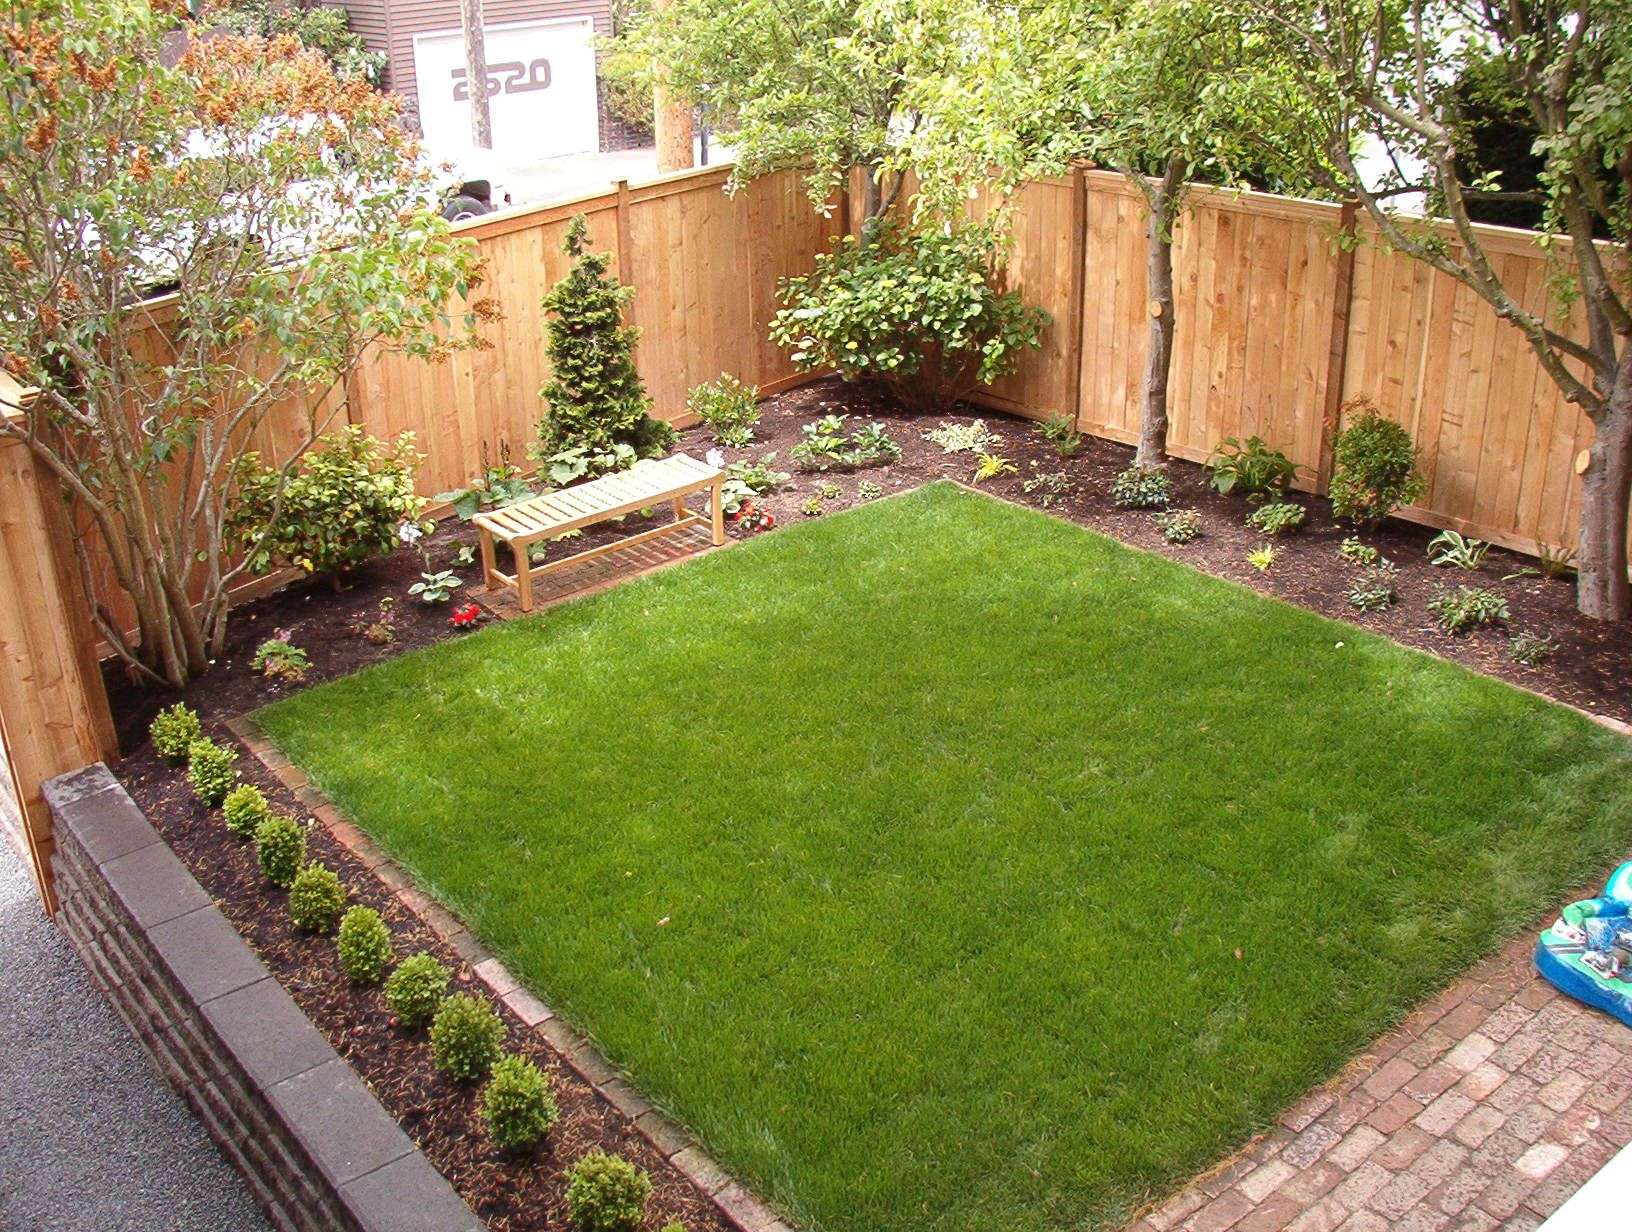 Sod lawn for children to play on landscape ideas for Grass garden ideas